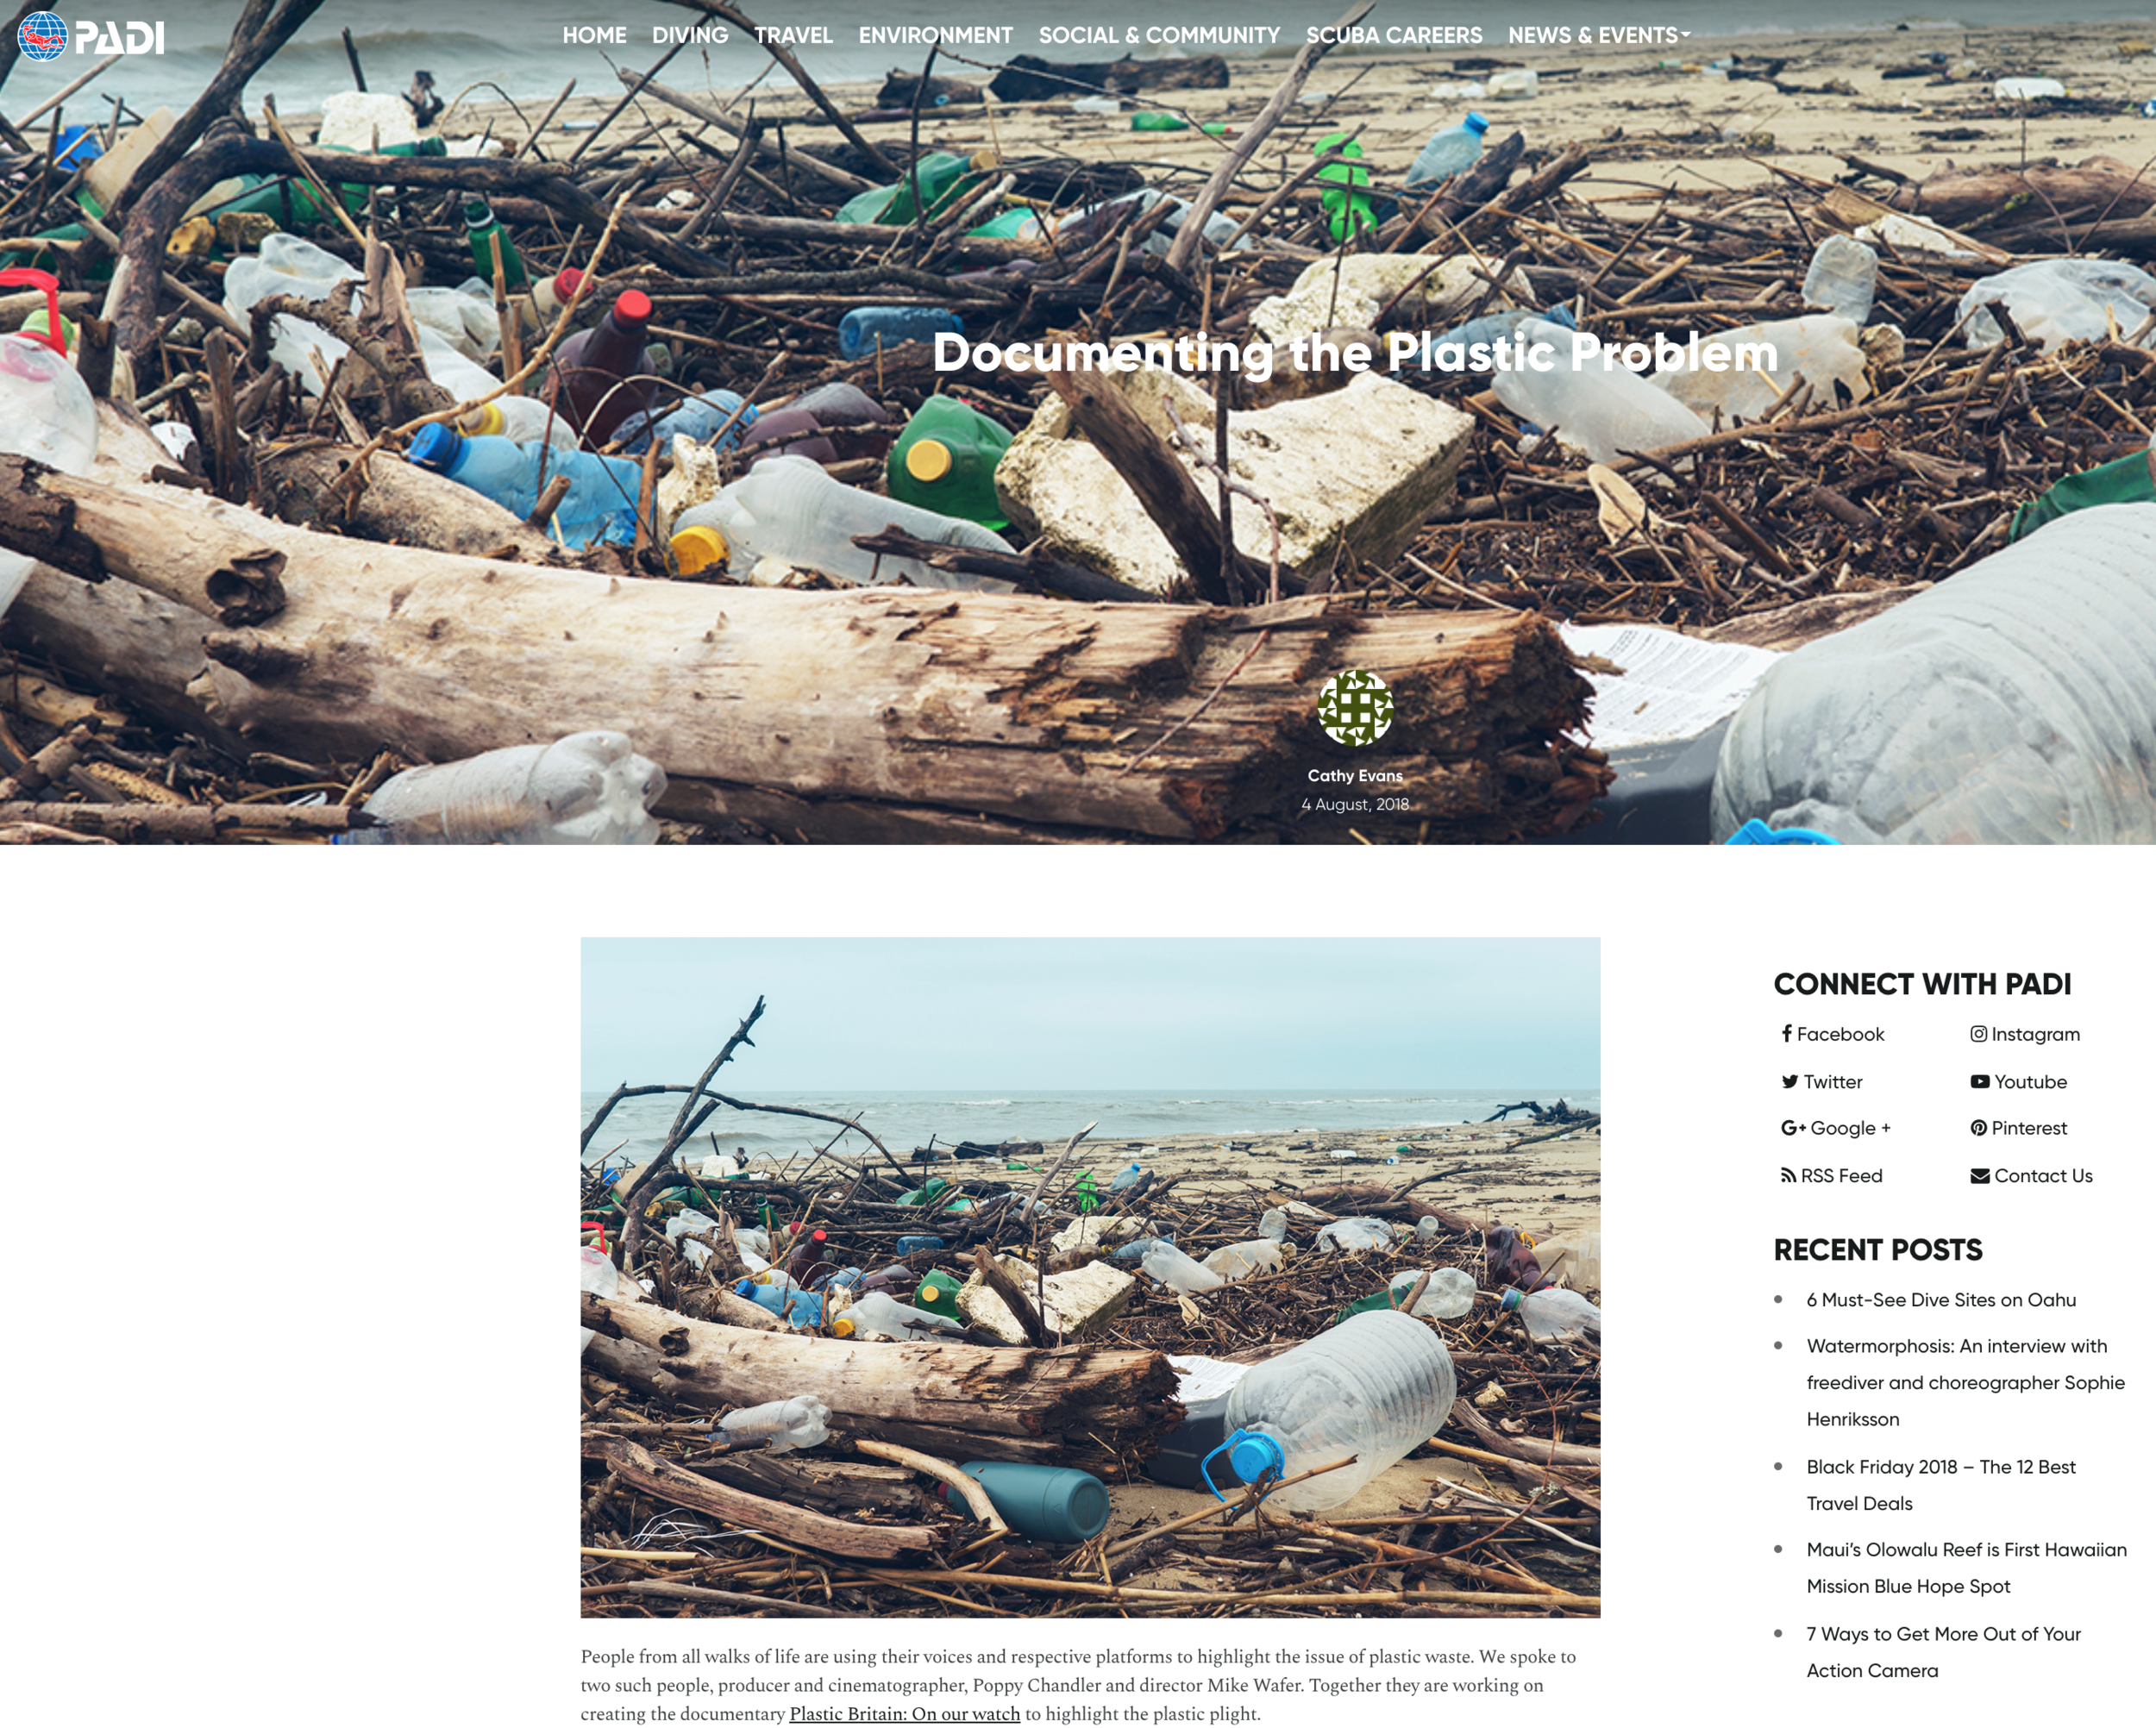 'Documenting the plastic problem' - https://www2.padi.com/blog/2018/08/04/documenting-plastic-problem/